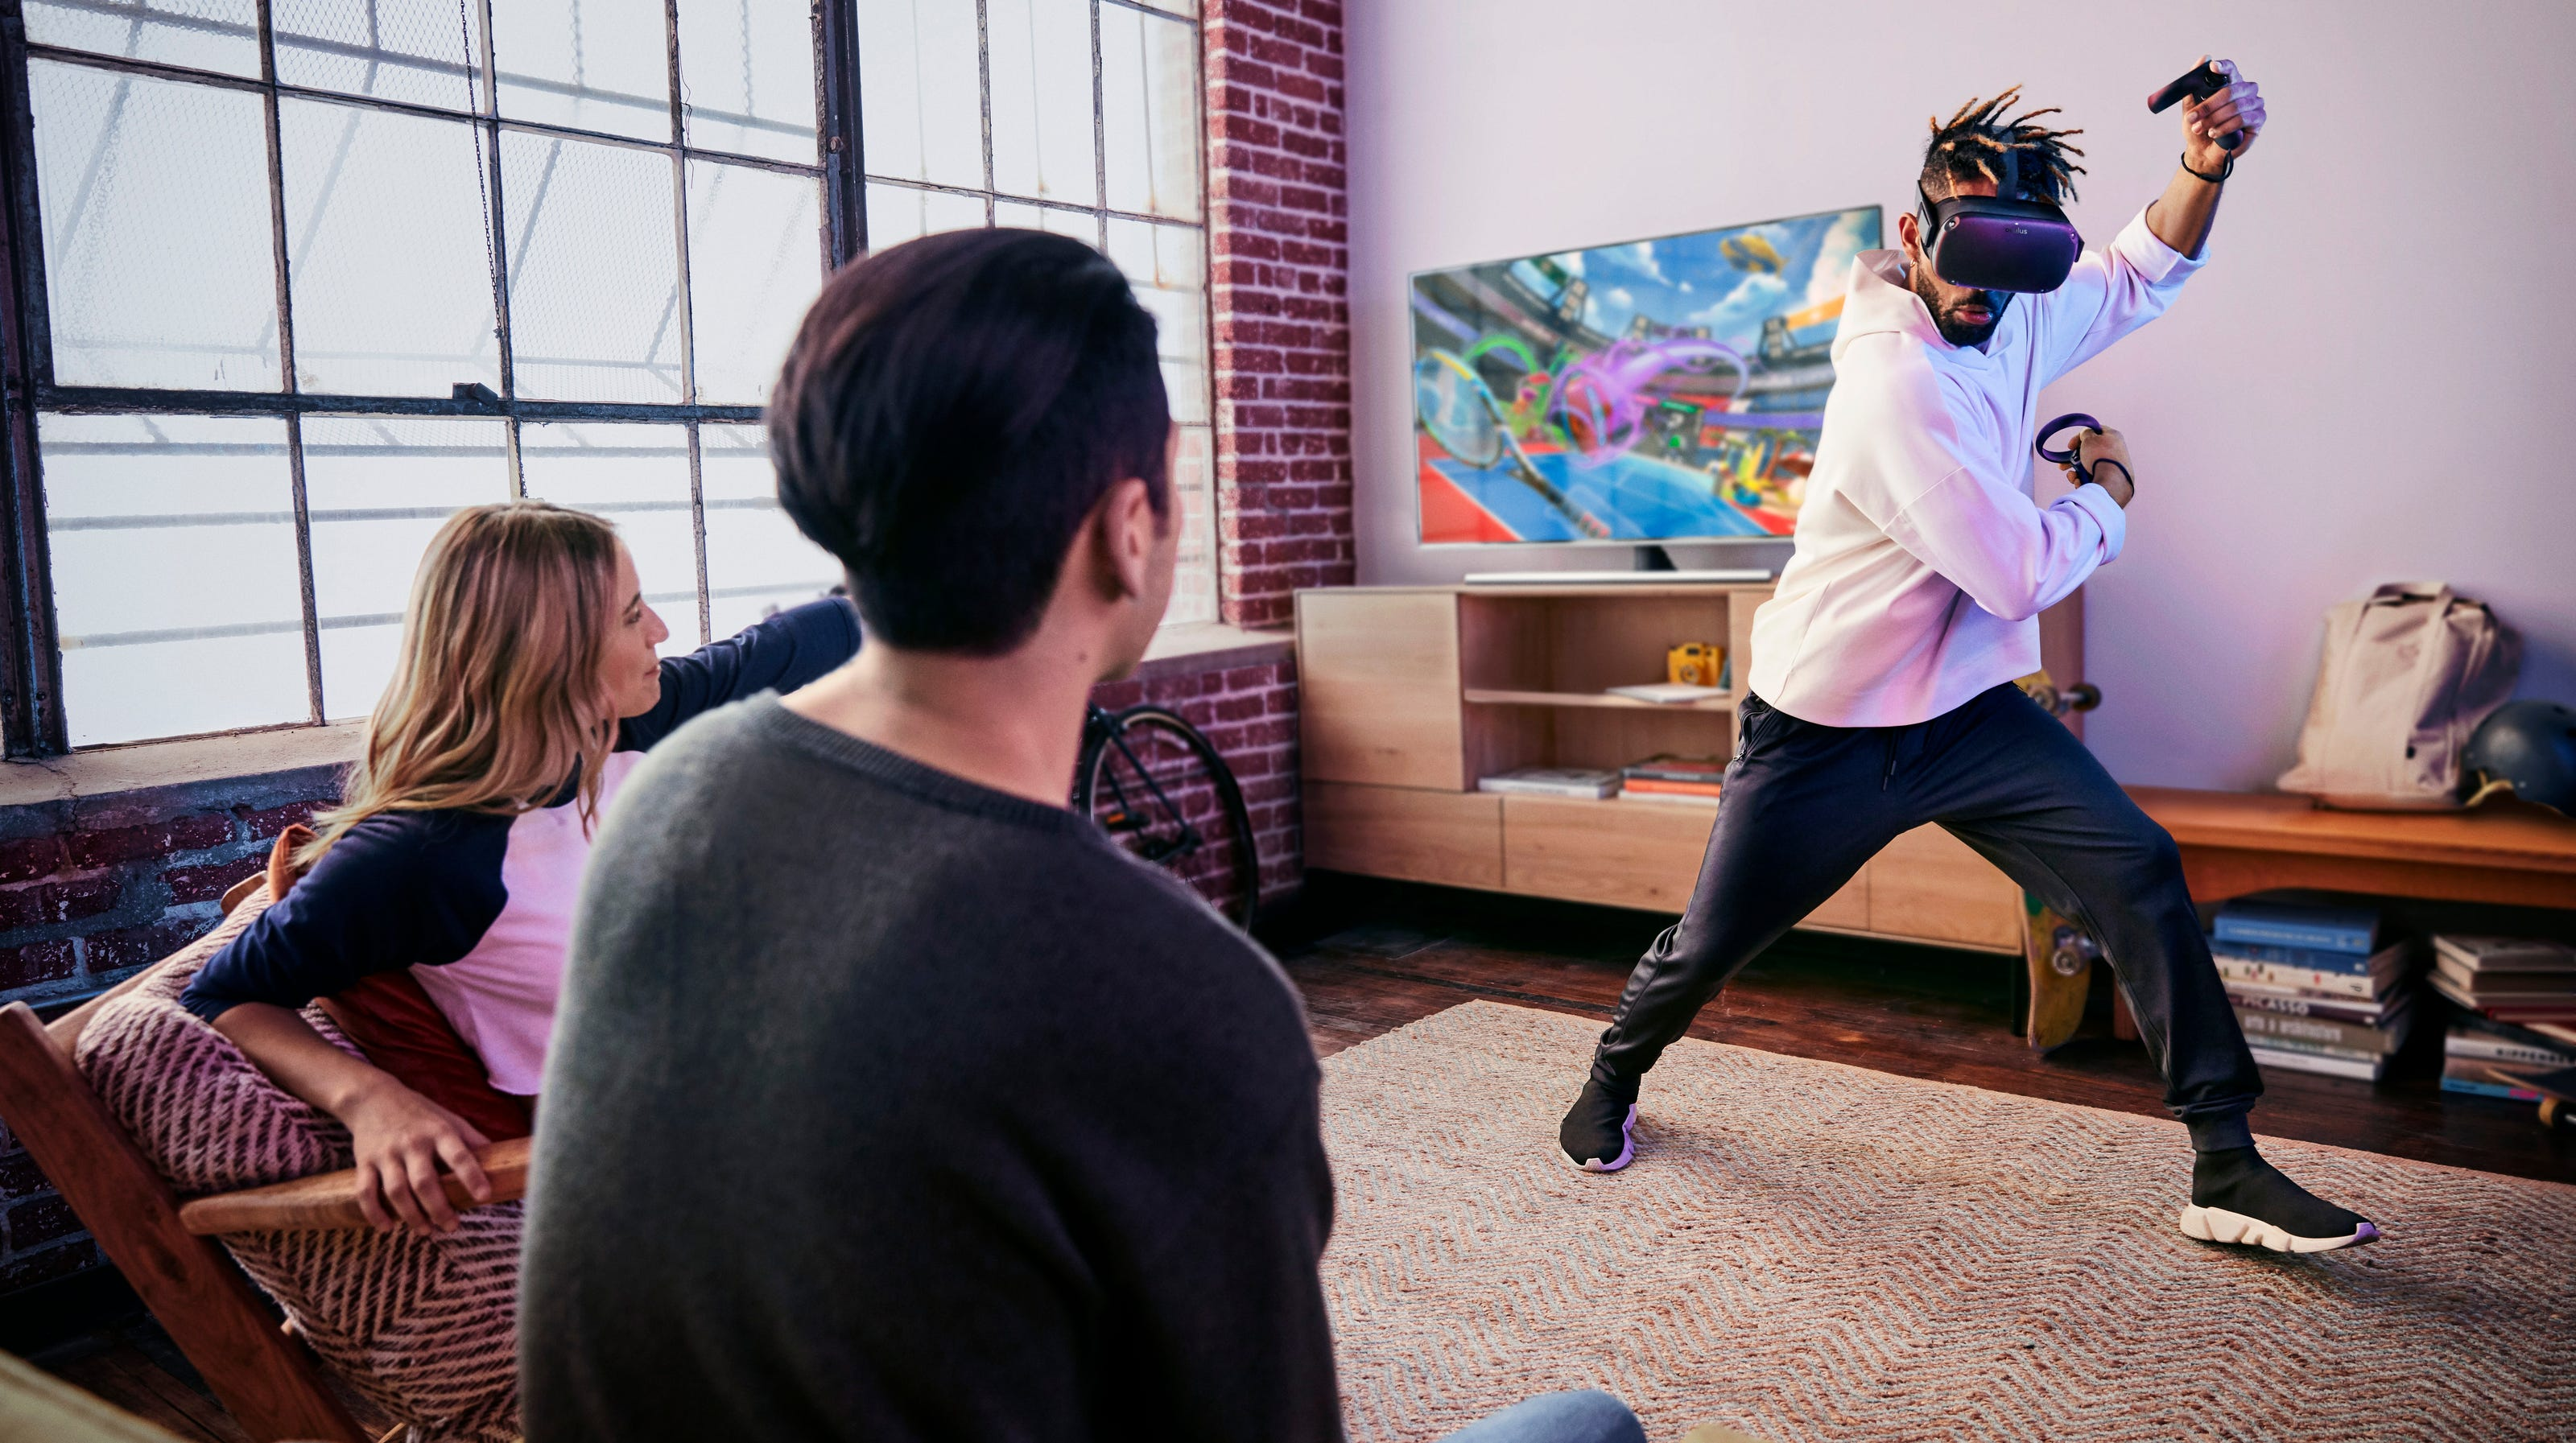 Oculus Quest: Five top virtual reality video games for new VR headset